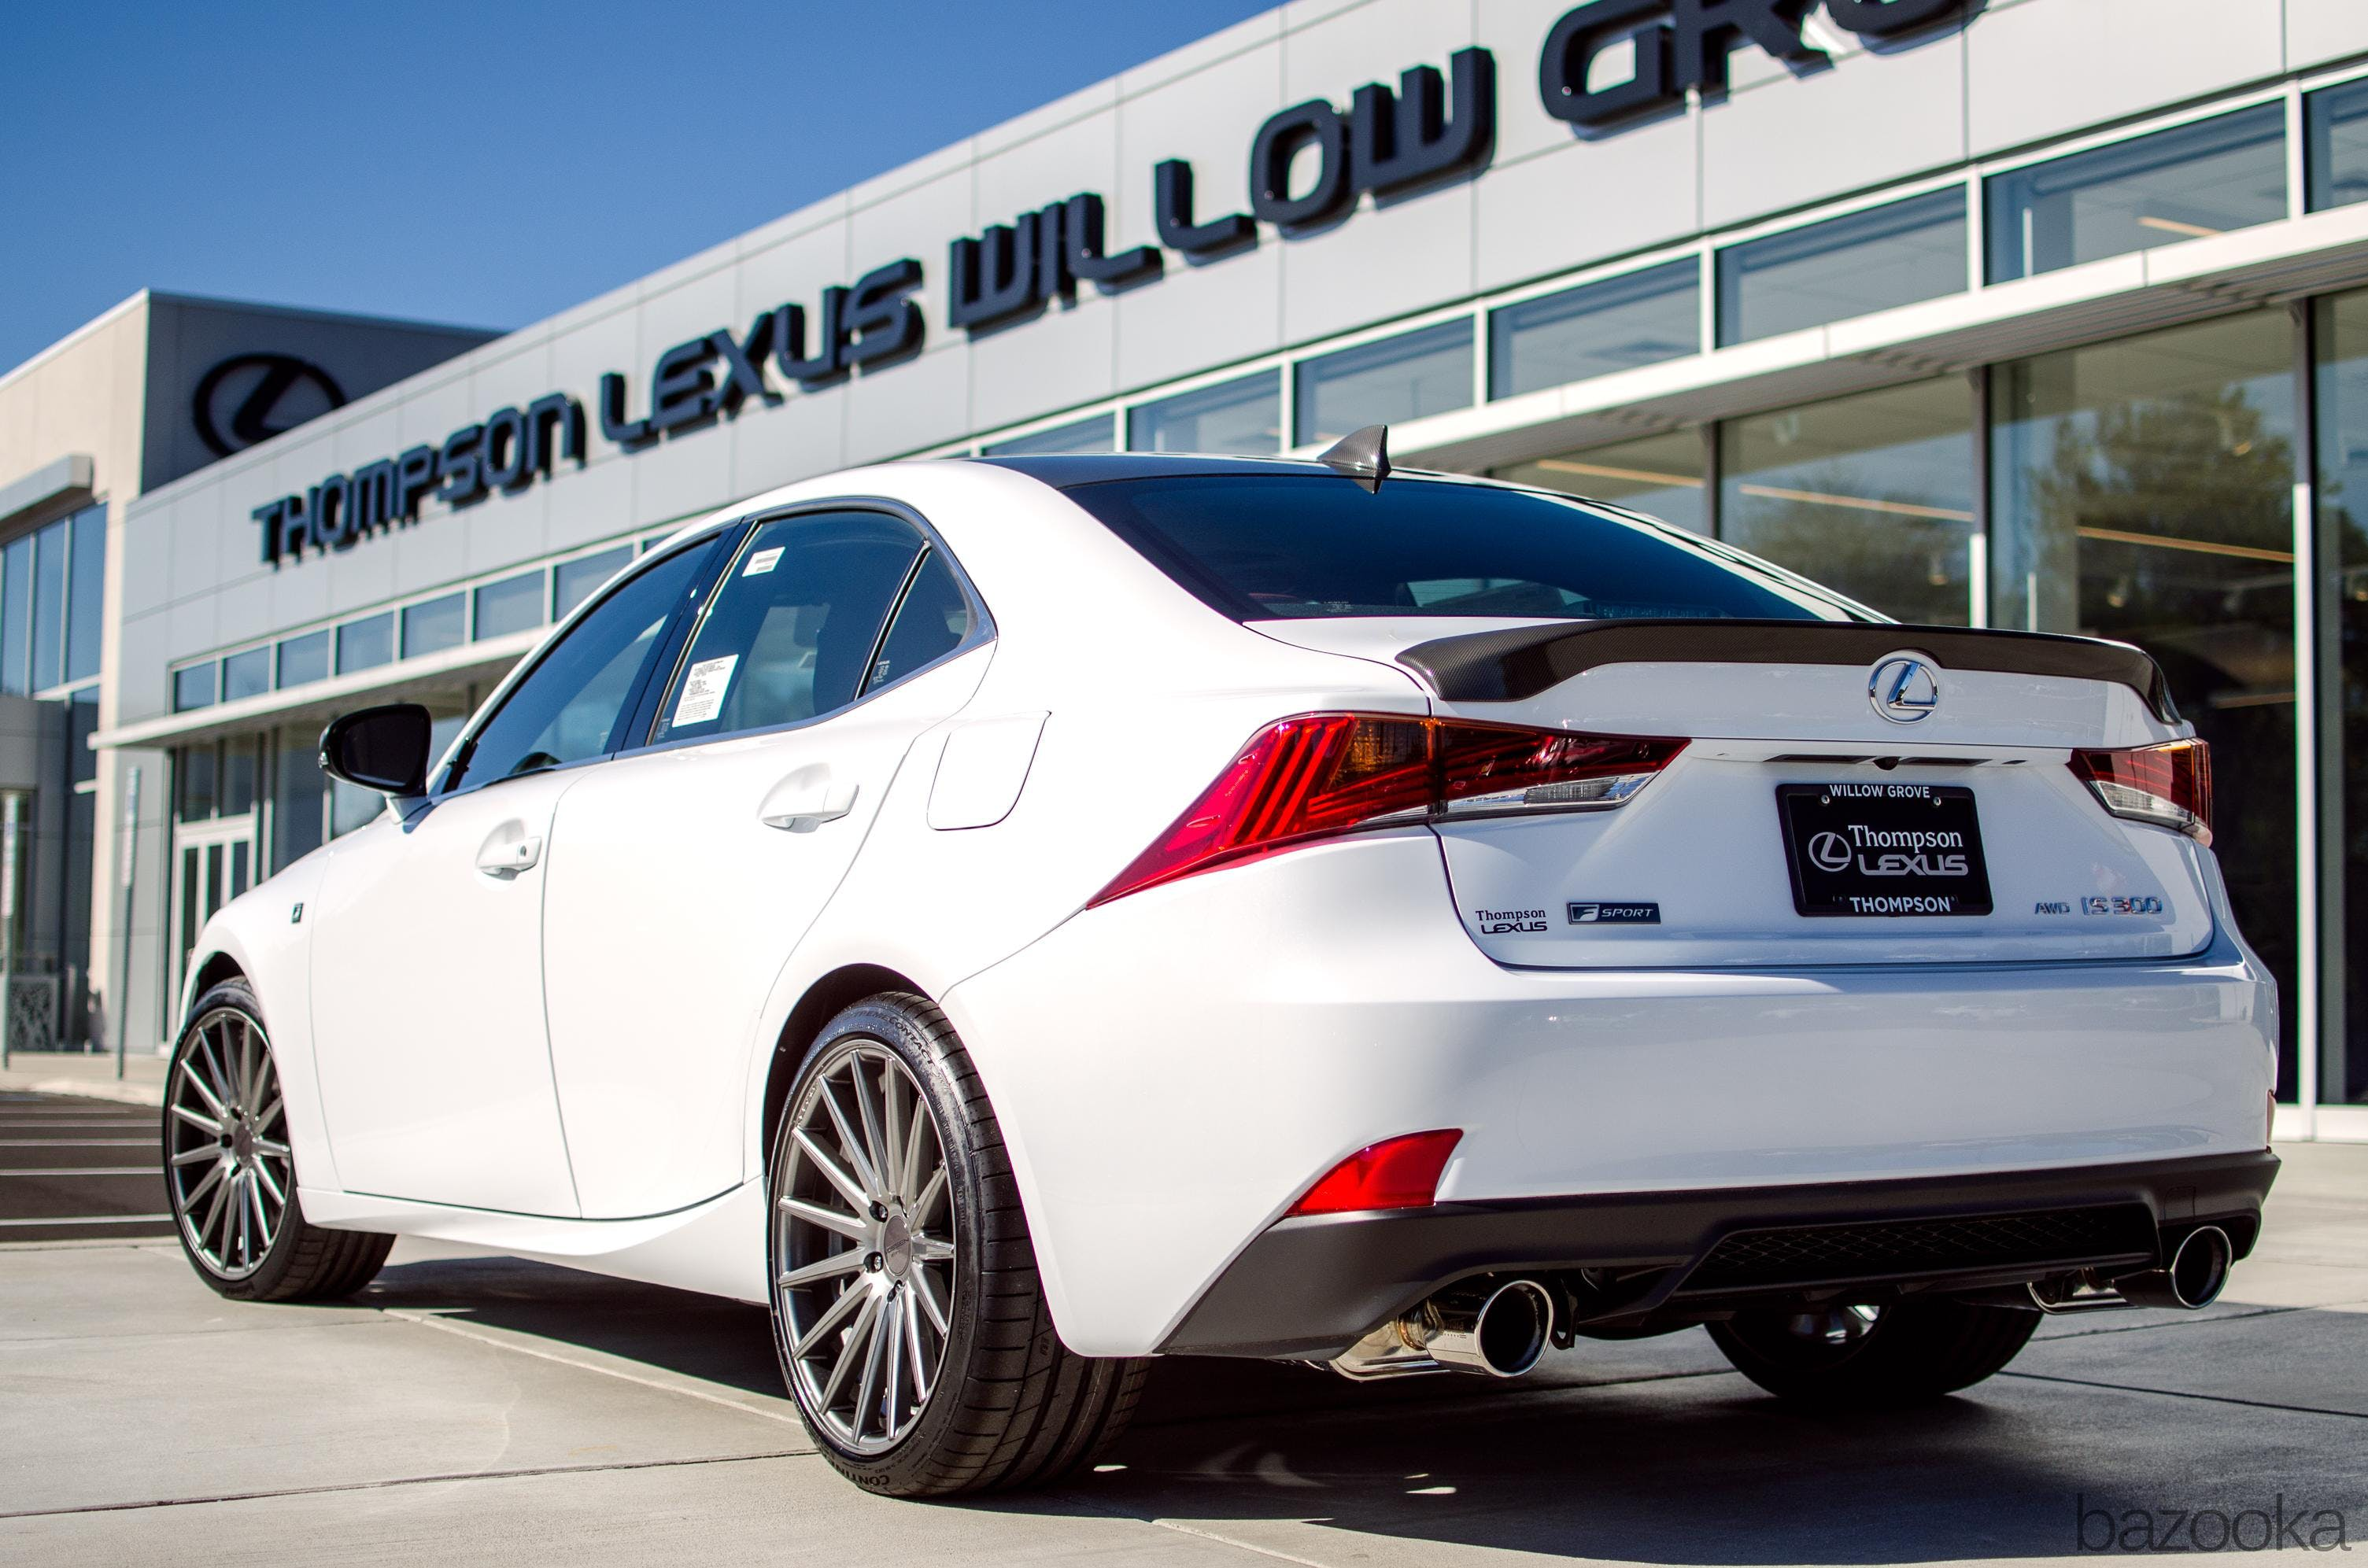 Thompson Lexus Willow Grove >> Thompson Lexus Willow Grove Cars Coffee Willow Grove